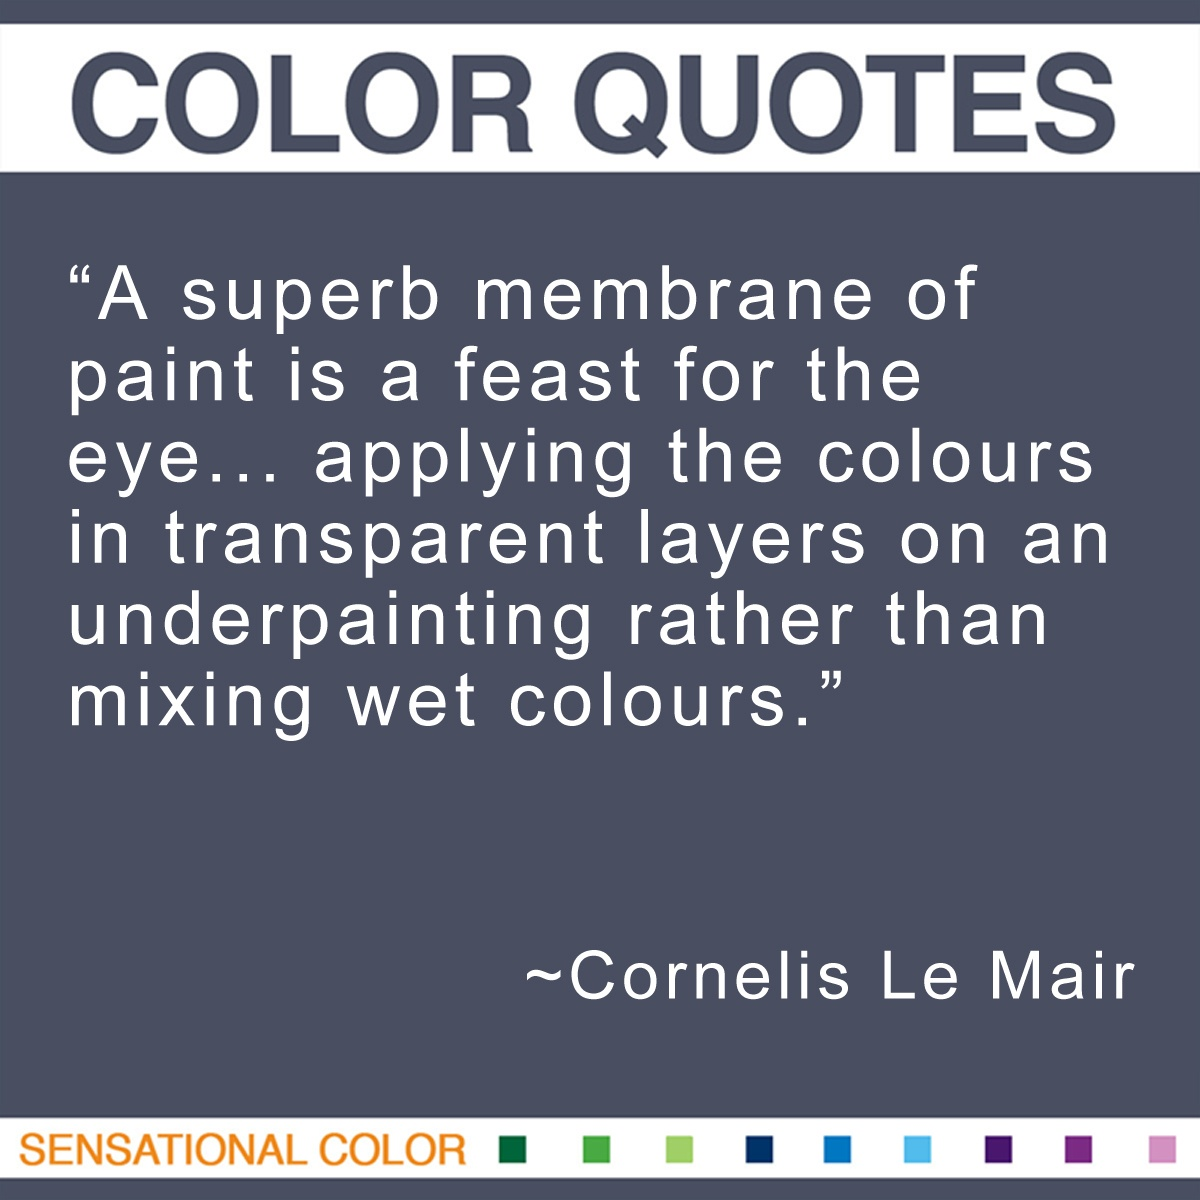 """""""A superb membrane of paint is a feast for the eye… applying the colours in transparent layers on an underpainting rather than mixing wet colours."""" - Cornelis Le Mair"""